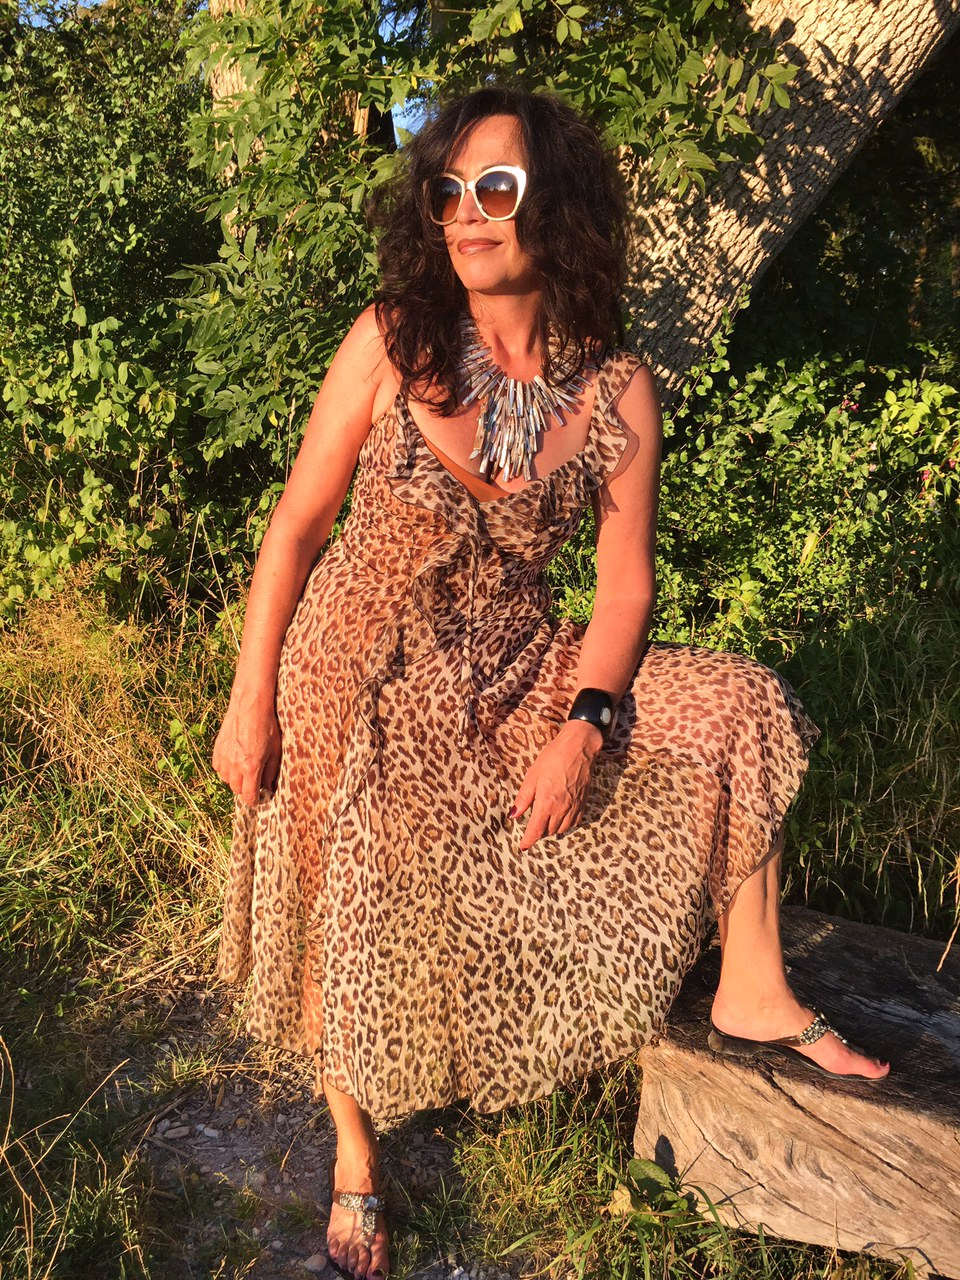 Leoprint, summerlook, summerstyle, fashion, ageless, dolce gabbana, silk, sunnies, sun, leo, chanel, nature, summerdress